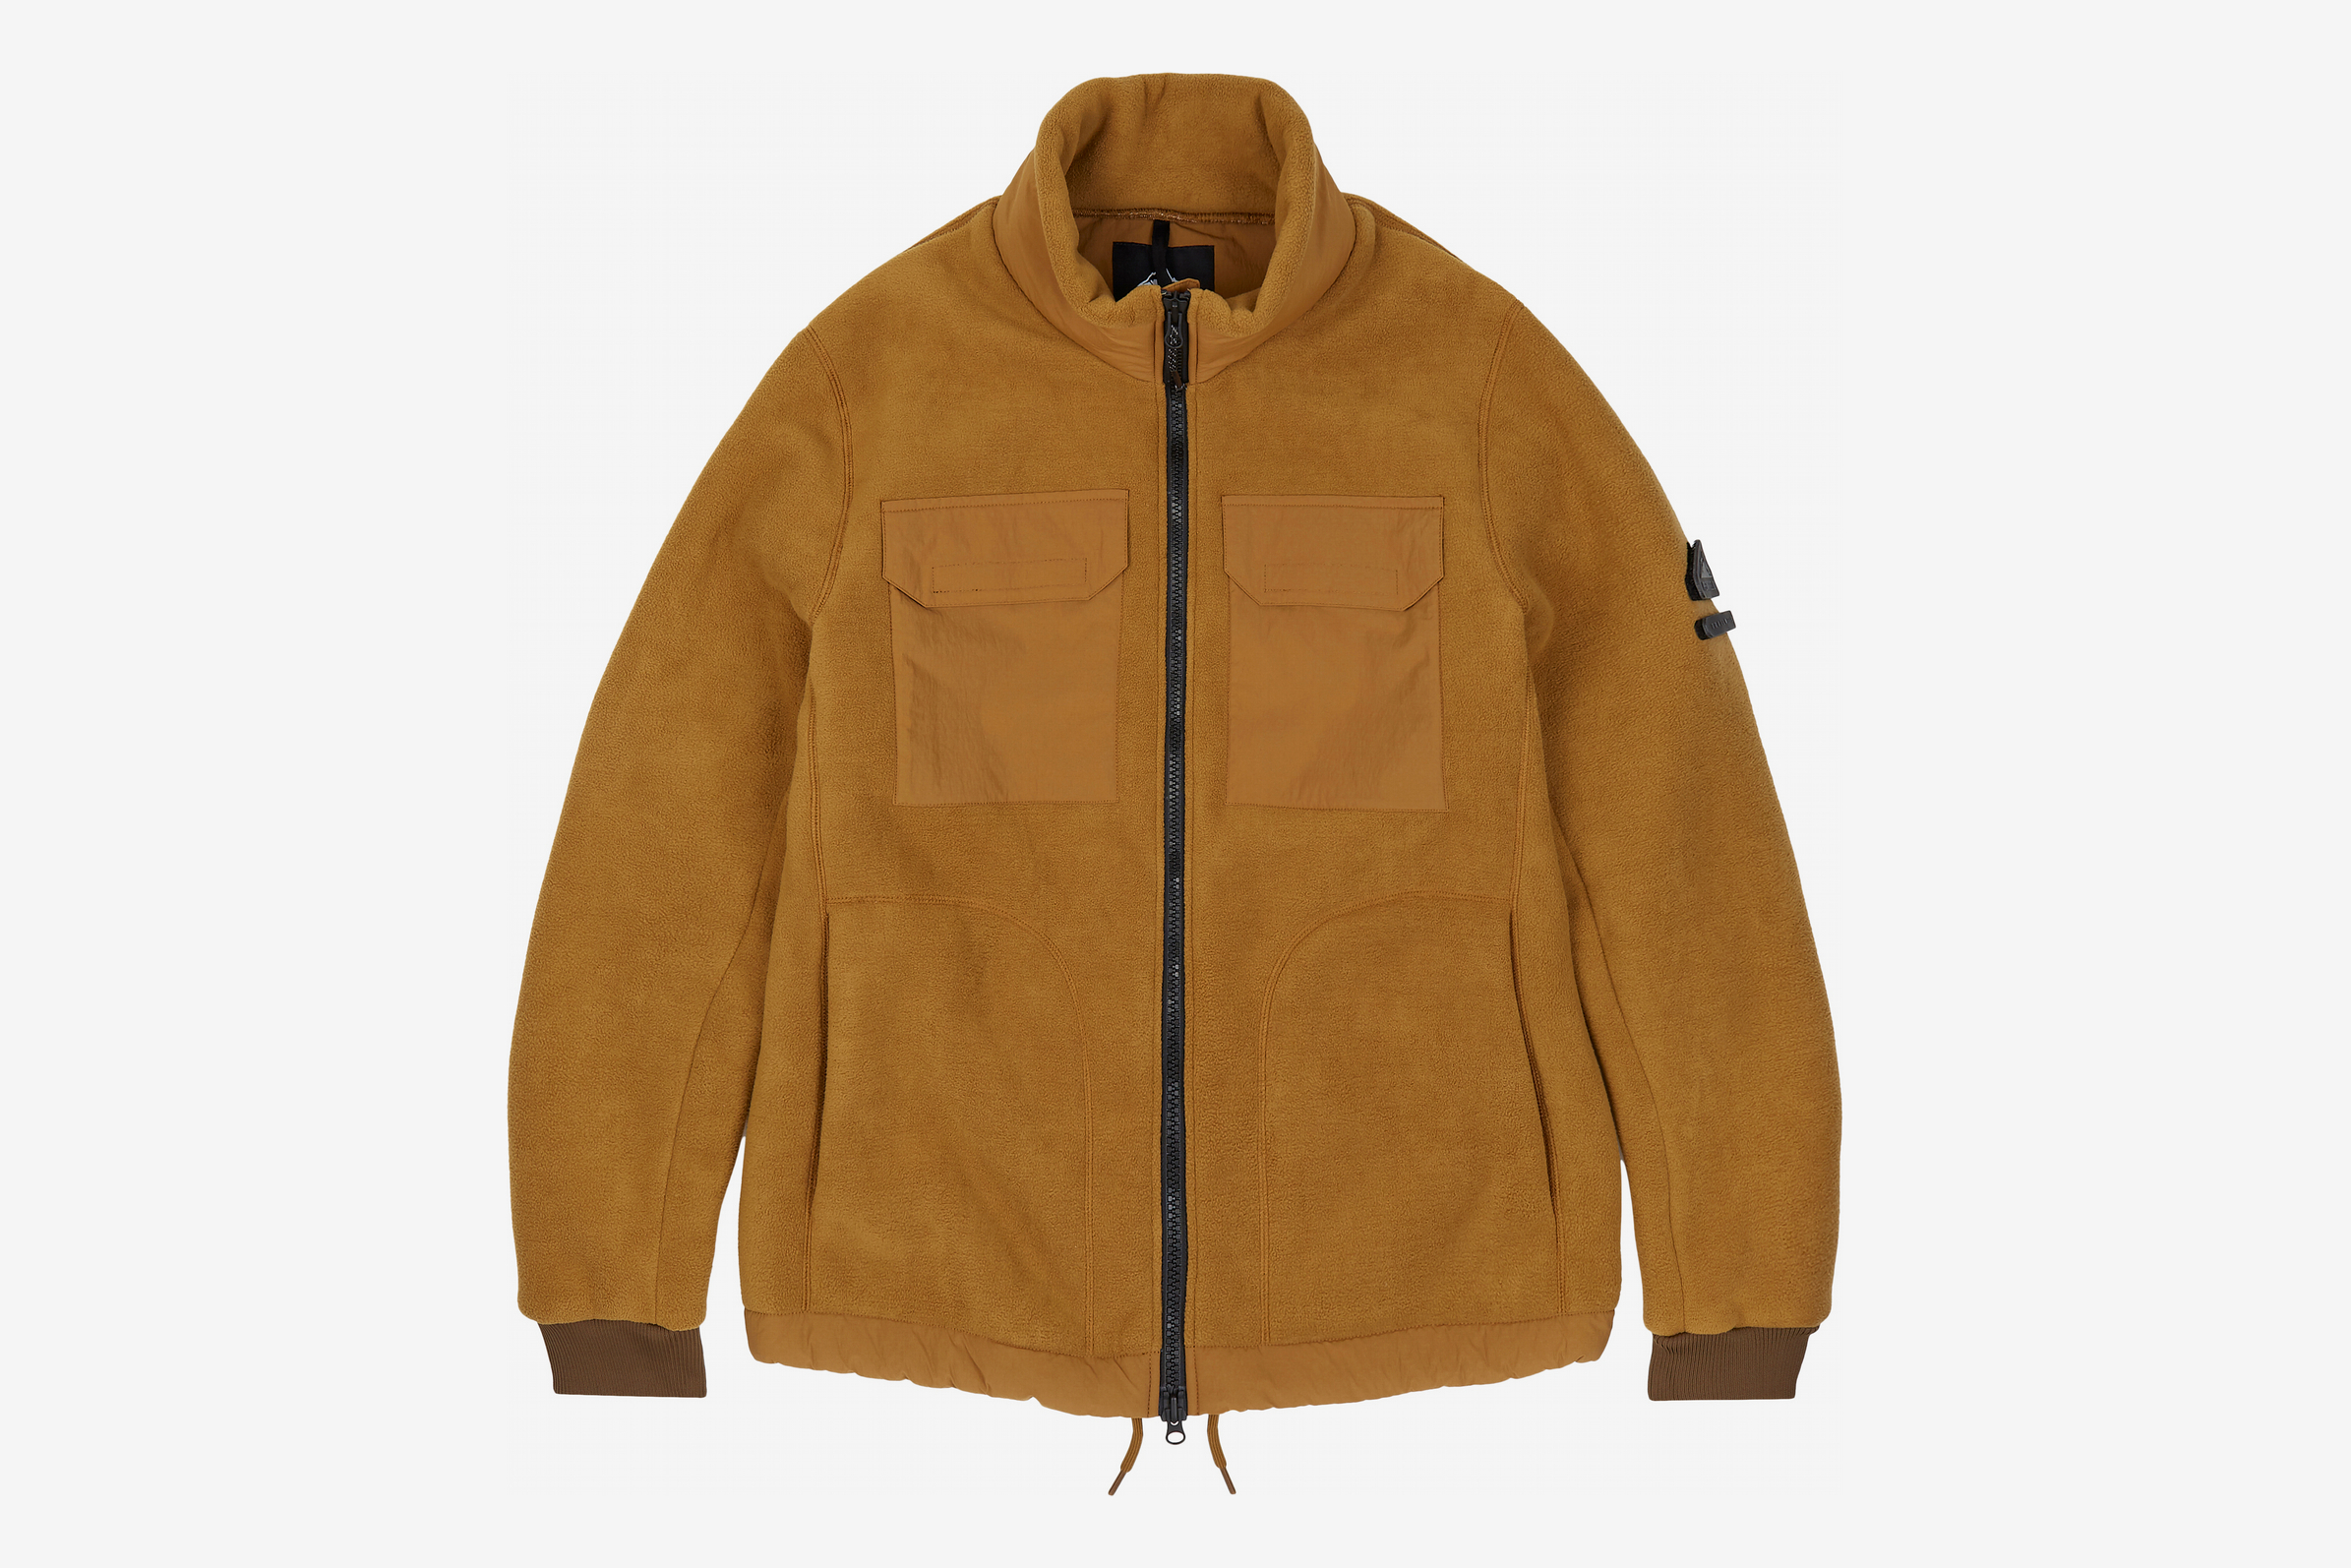 Penfield Schoening Winter Jacket